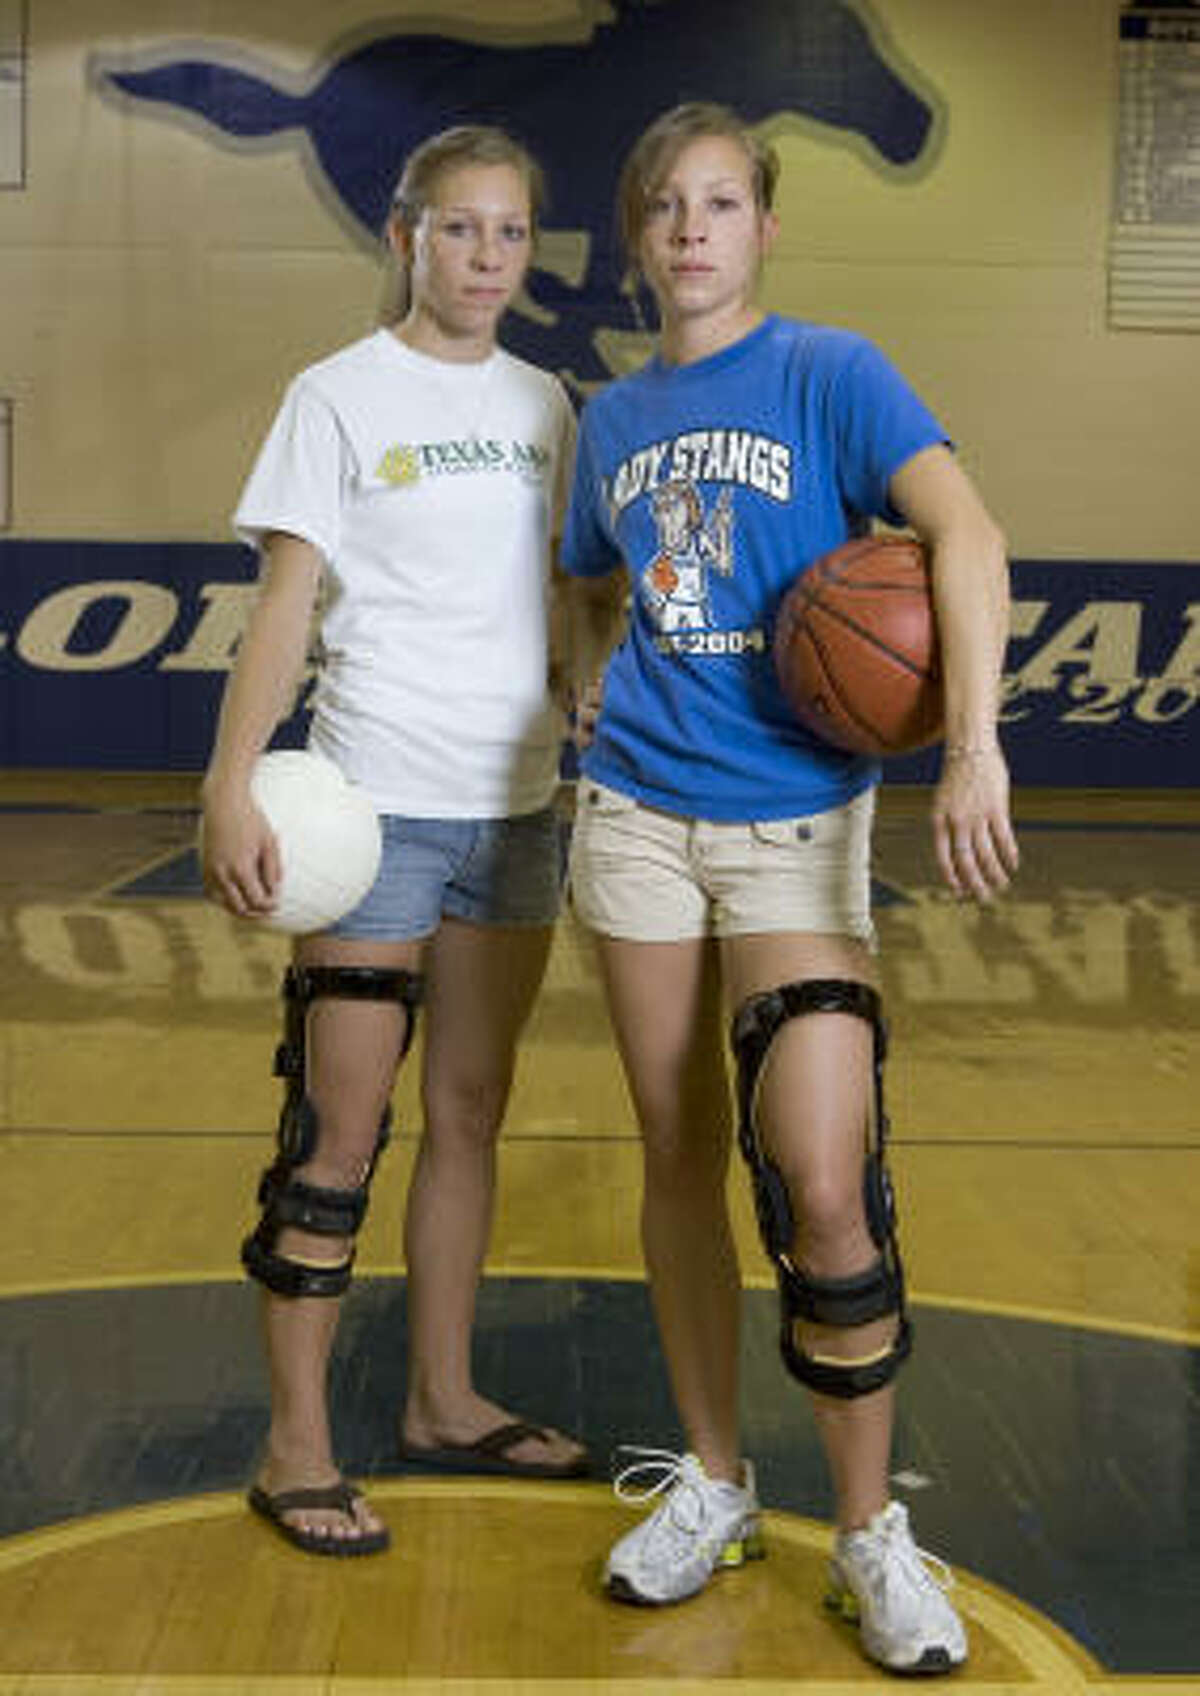 Twins Kara, left, and Julie Kroll, 18, both suffered torn ACLs during their athletic careers at Katy Taylor. Kara, a volleyball and basketball player, injured her knee in a preseason game her junior year. Julie, a basketball player, injured her knee in an AAU game her sophomore year and then again playing for Taylor in February.